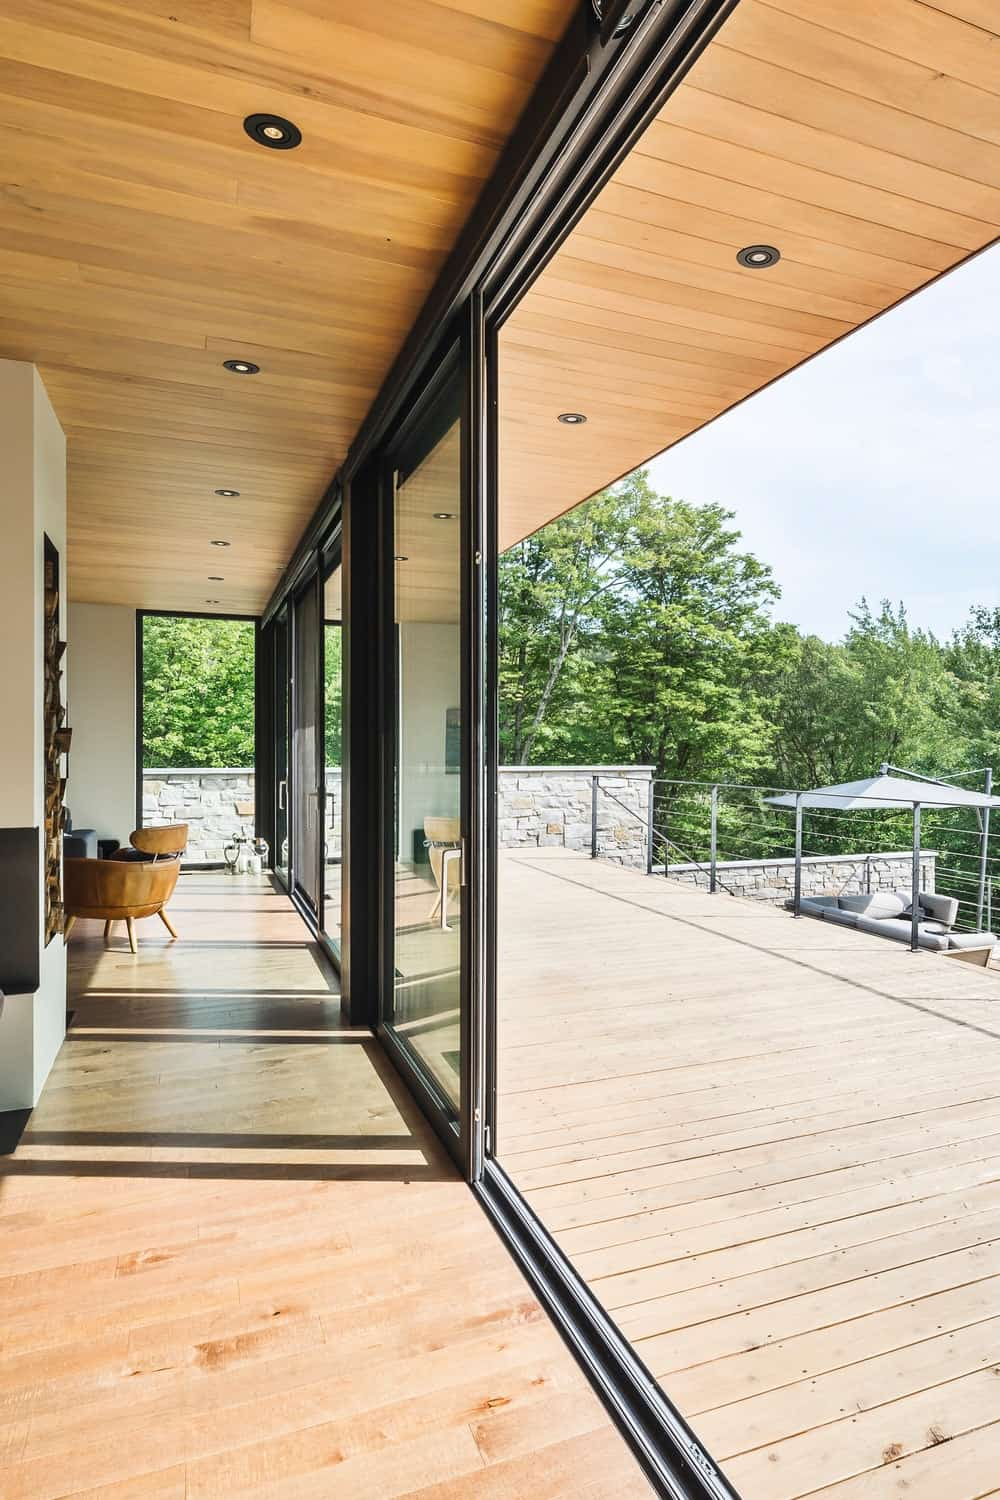 The house features a deck leading to the patio. Photo Credit: Ulysse Lemerise Bouchard